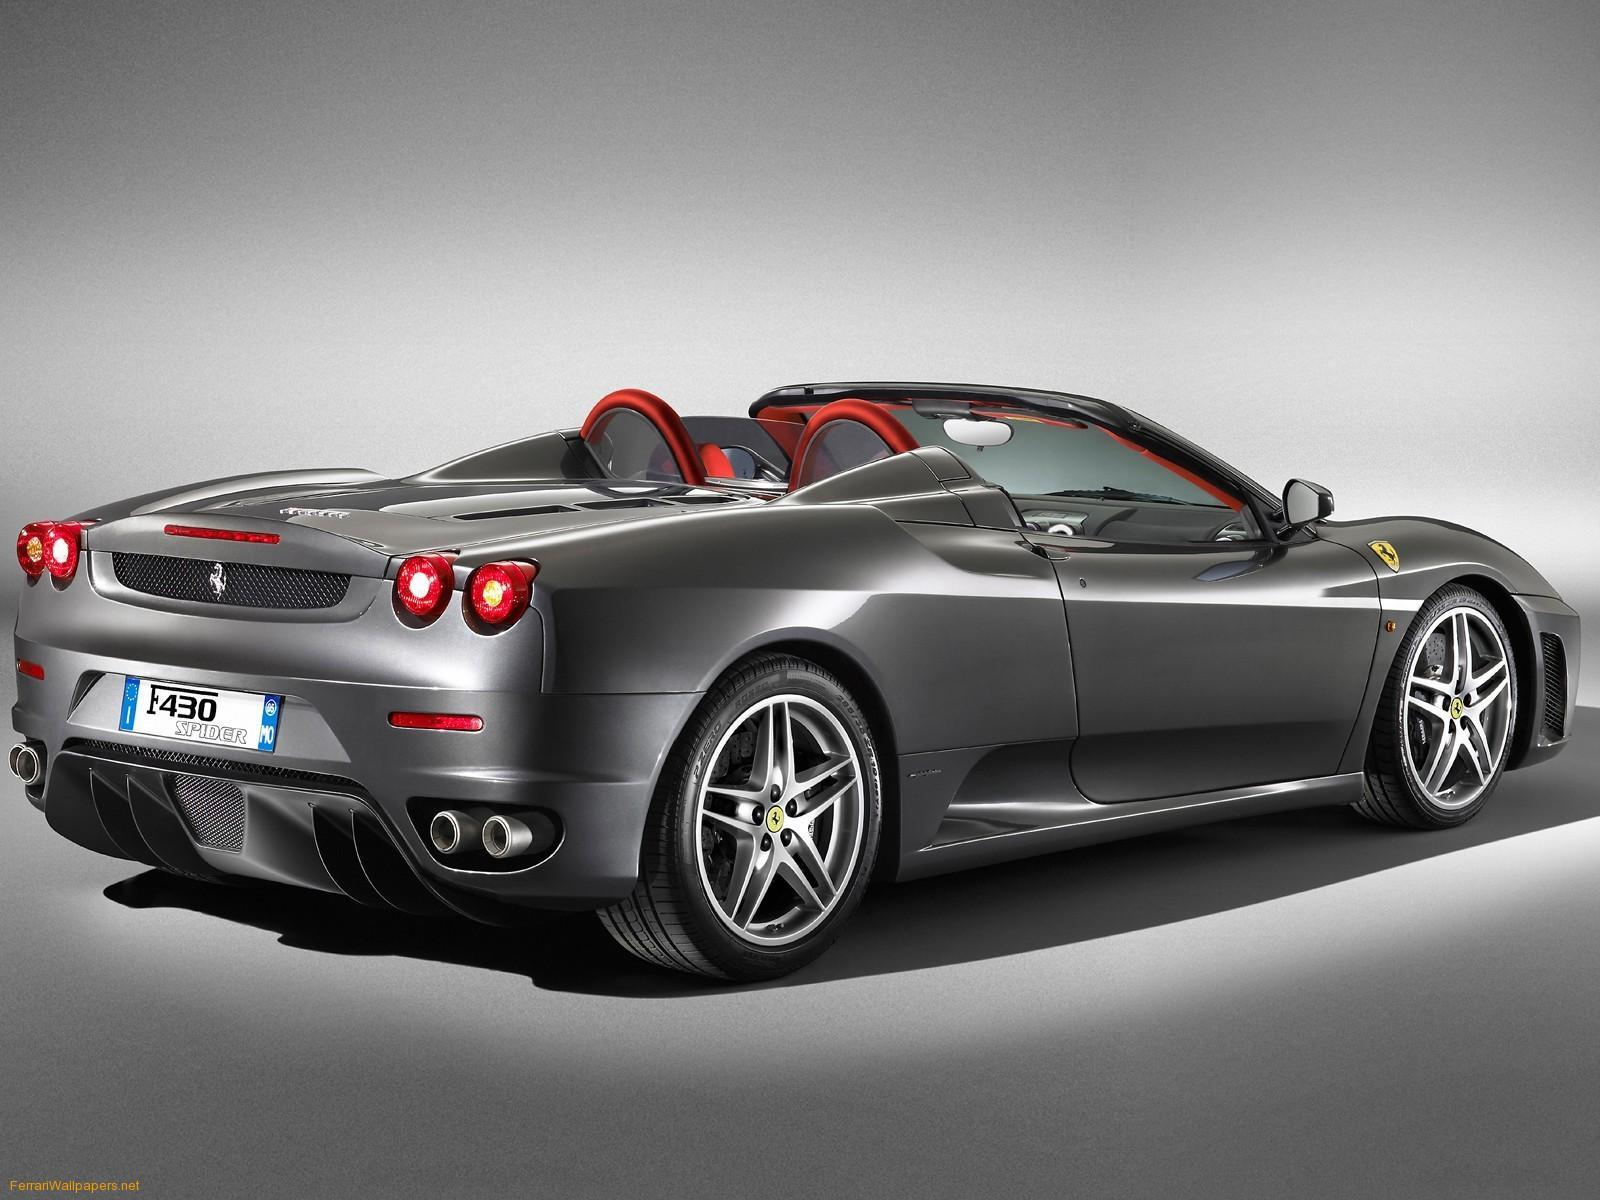 Wallpapers For > Black Ferrari F430 Spider Wallpapers